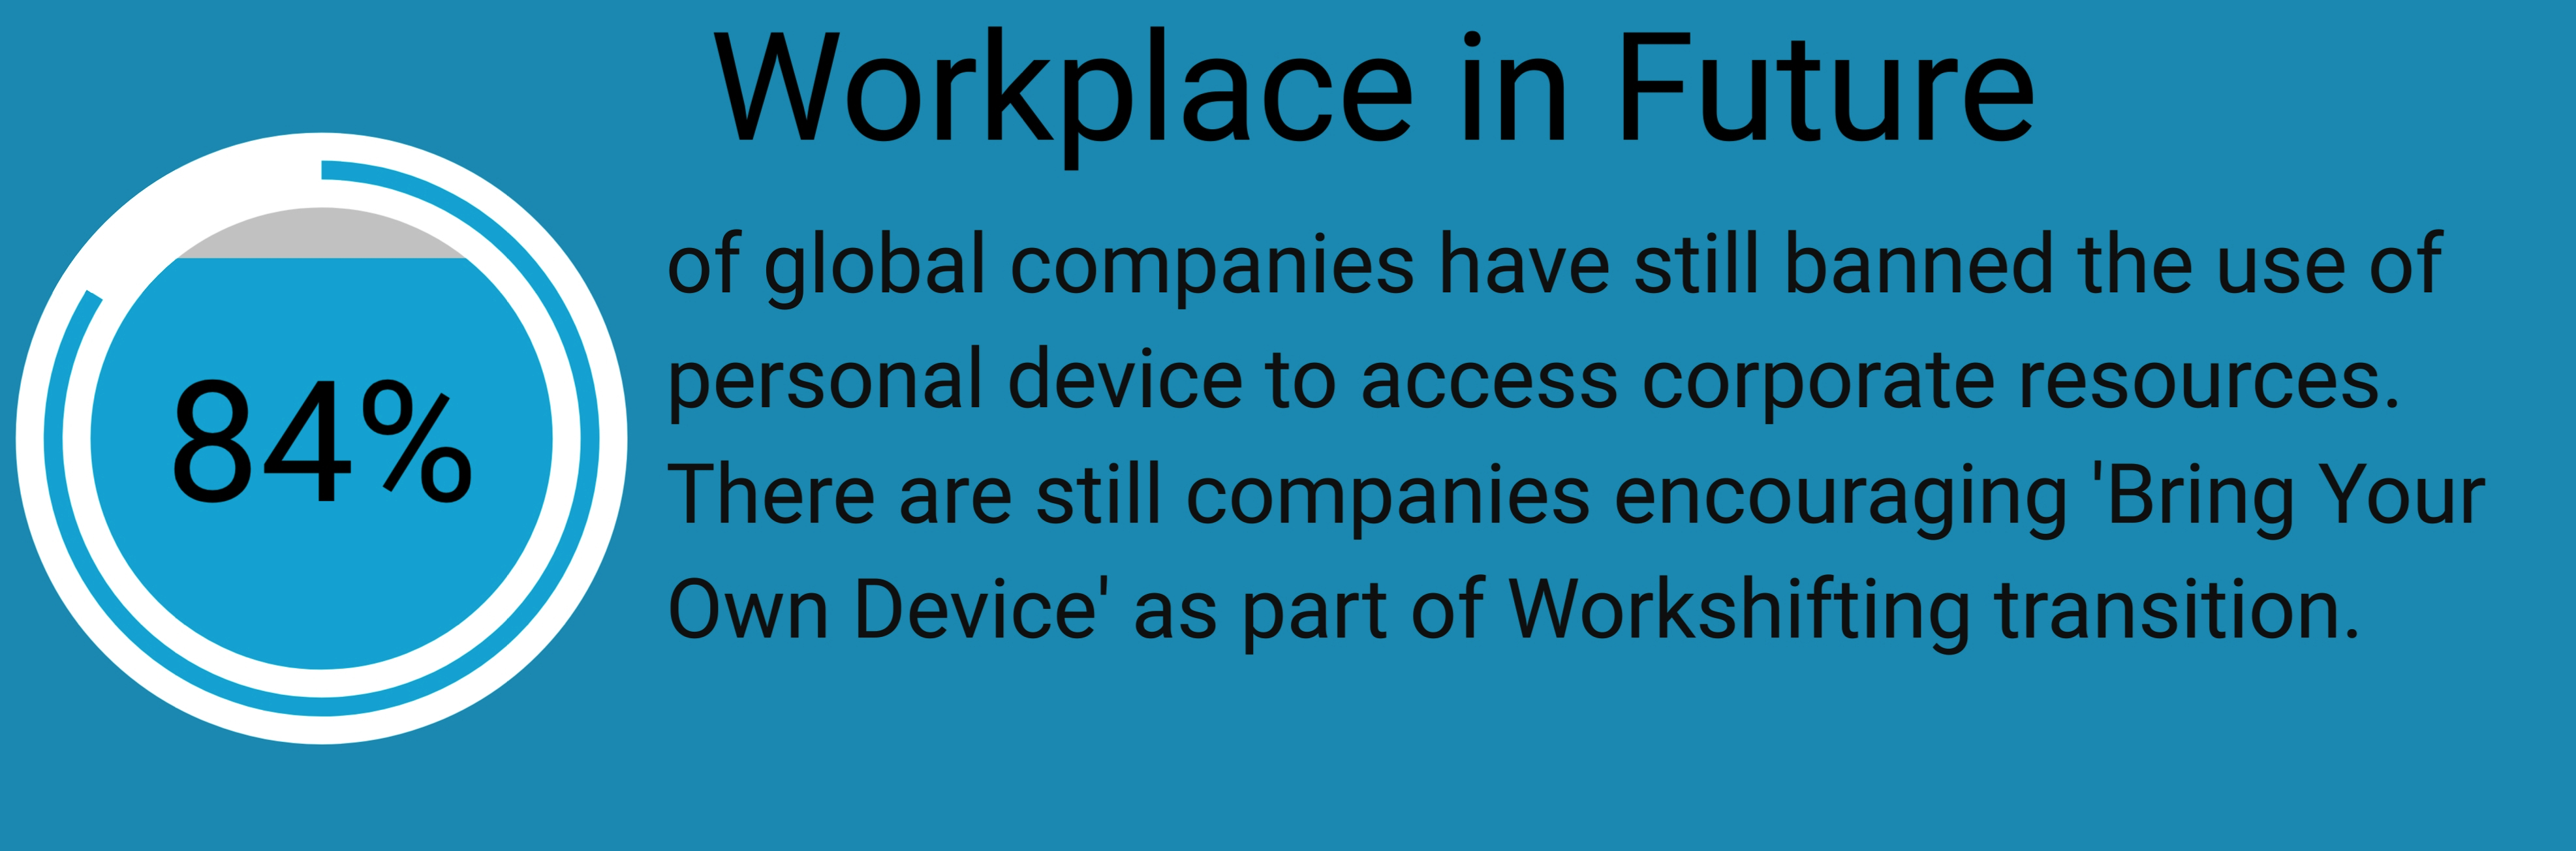 mobile workforce future